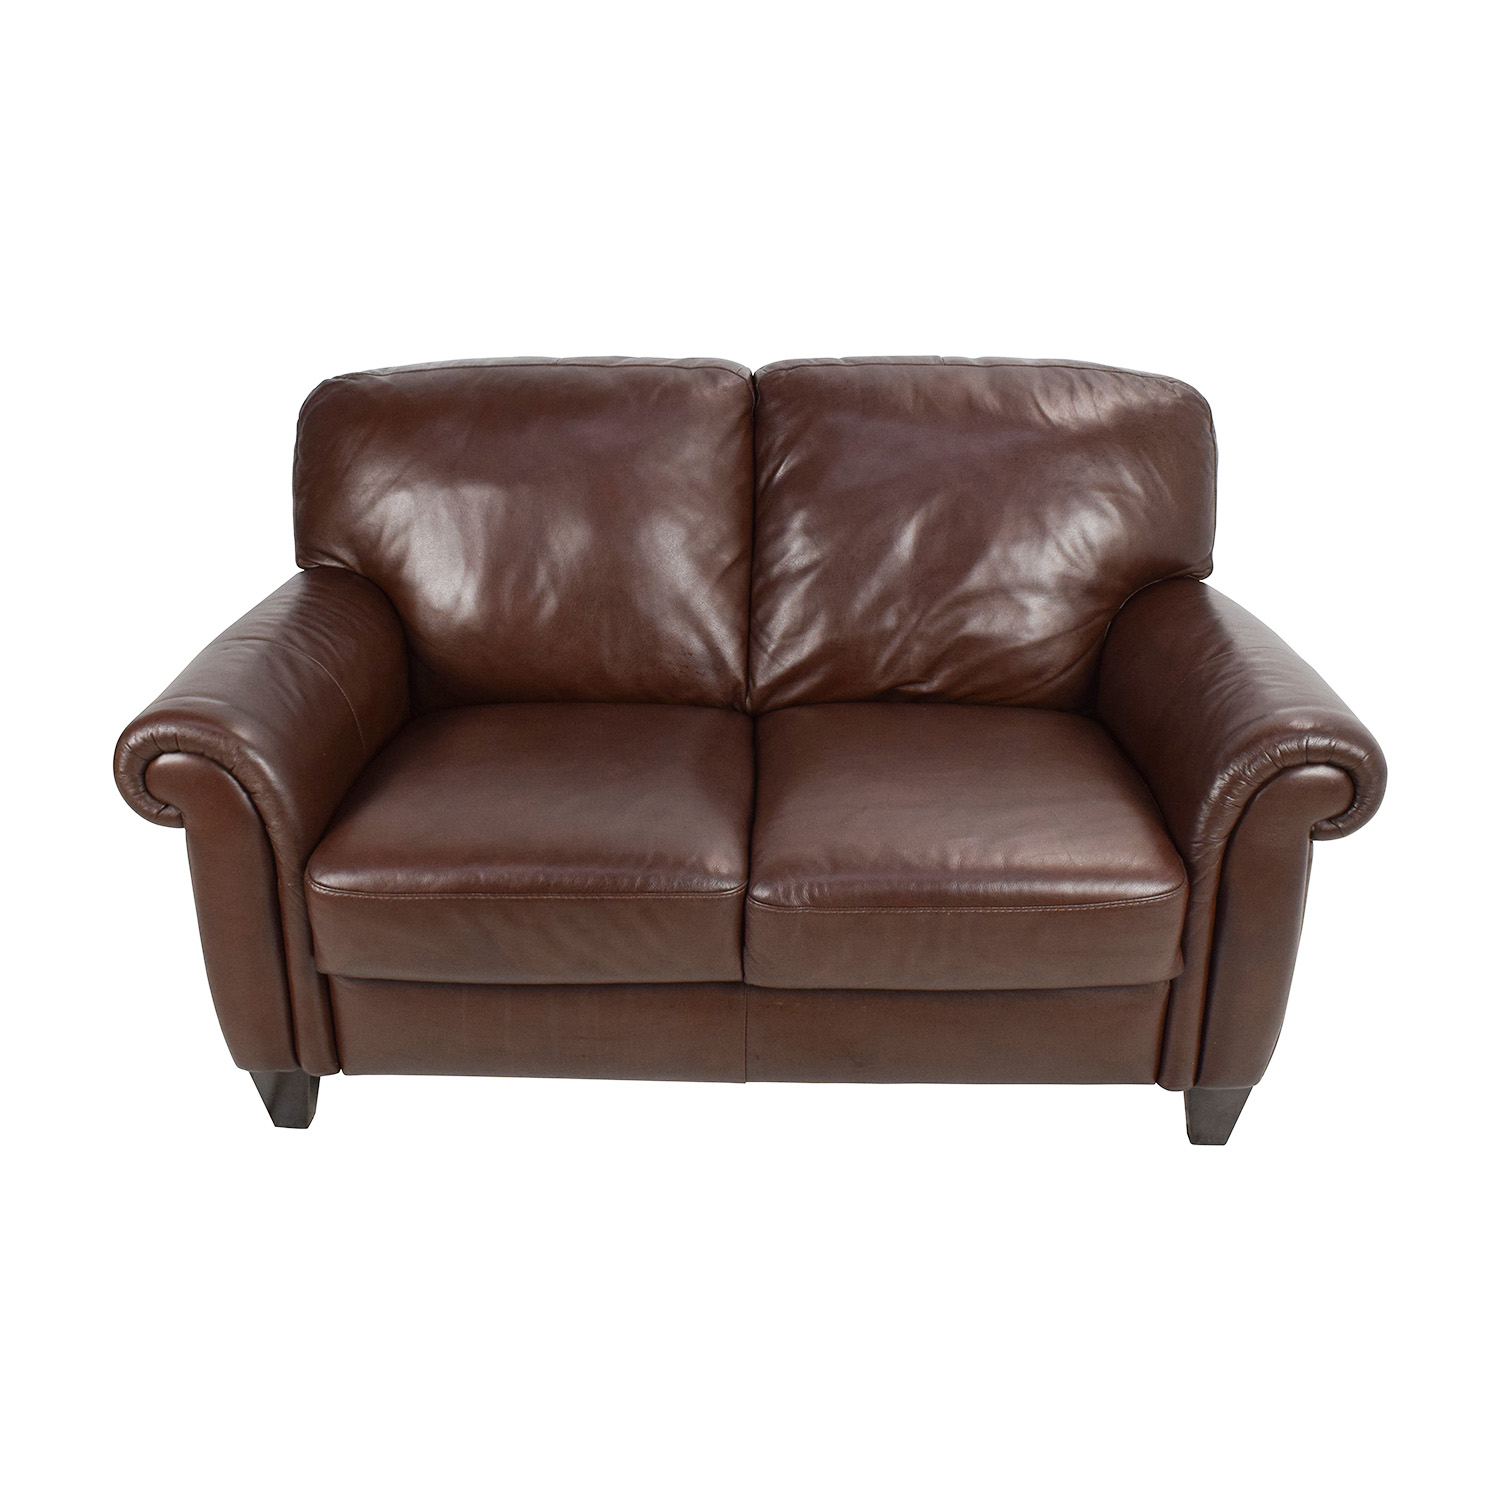 Leather Loveseat Brown Leather Loveseats Home Ideas